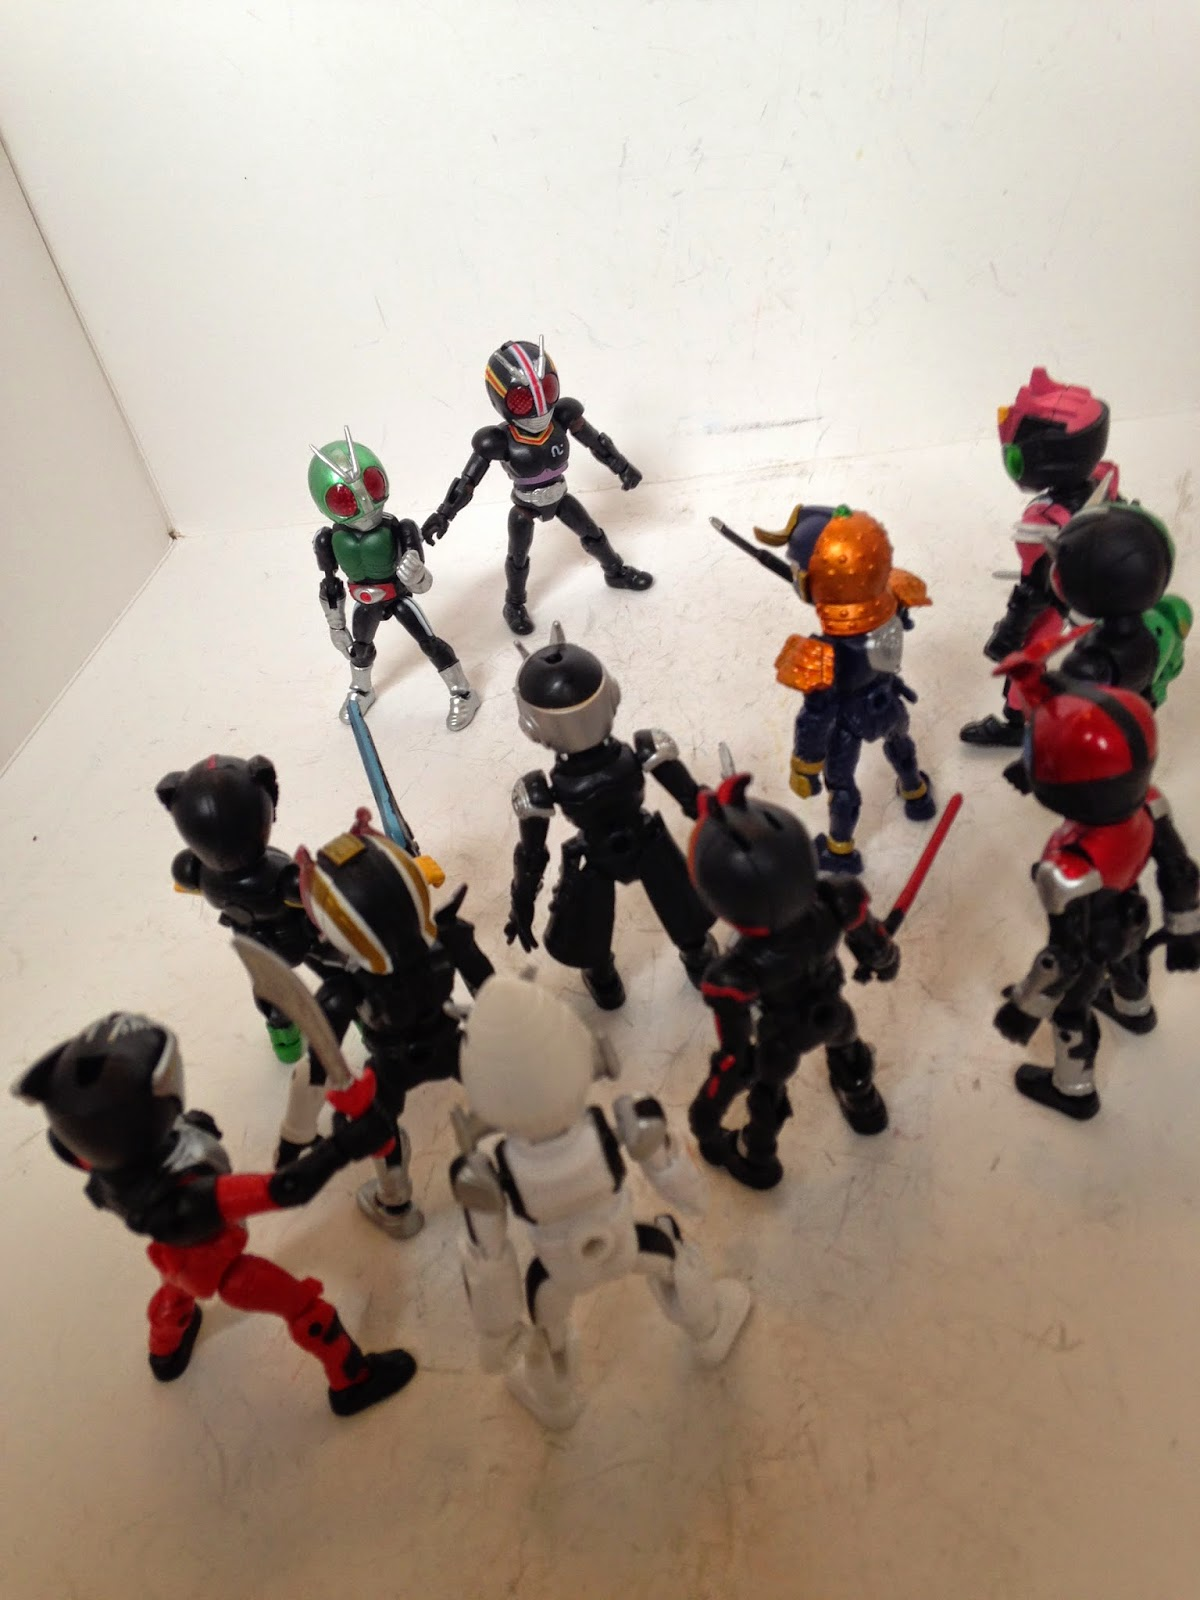 66action Rider Taisen: Heisei vs Showa